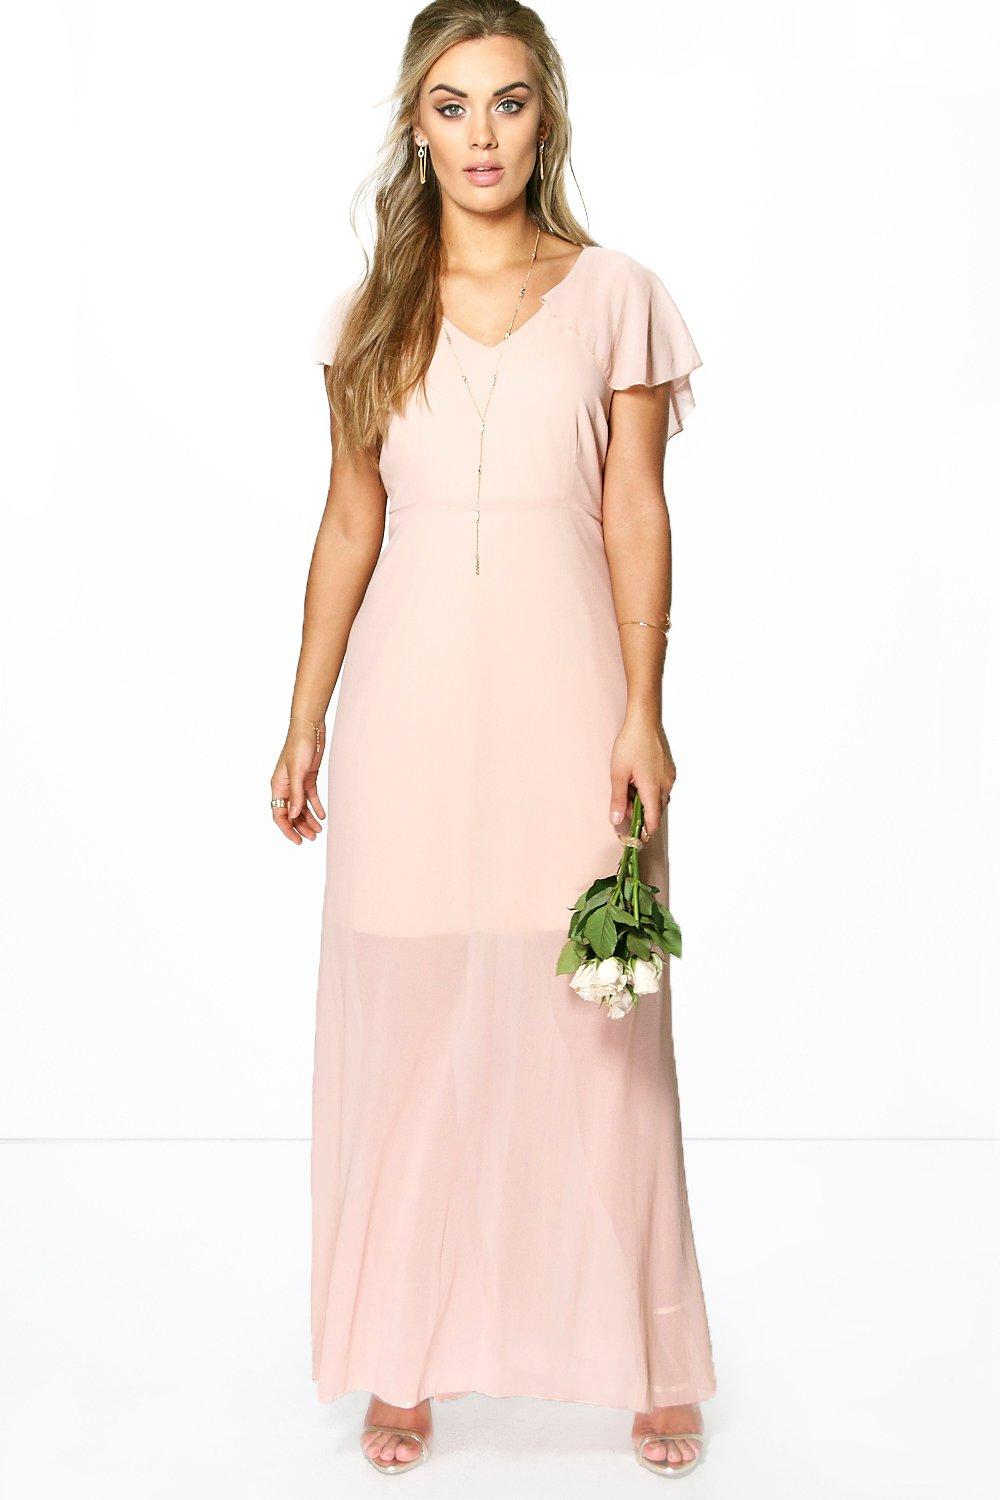 Plus mandy chiffon cape detail maxi dress at for Boohoo dresses for weddings